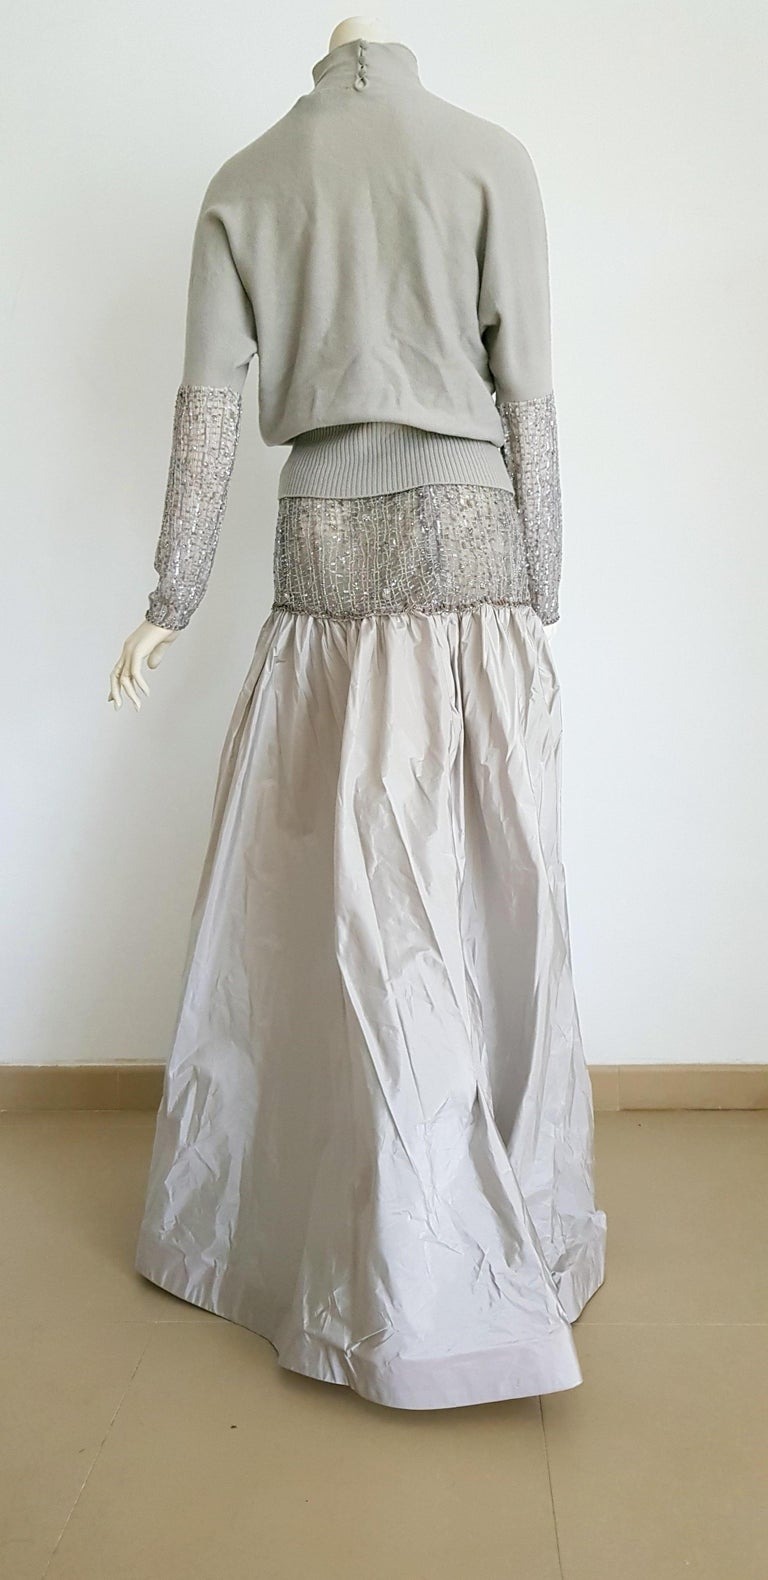 VALENTINO Top Sweater Skirt Swarovsky Embroidery Beads Cashmere Silk Dress - New In New Condition For Sale In Somo (Santander), ES